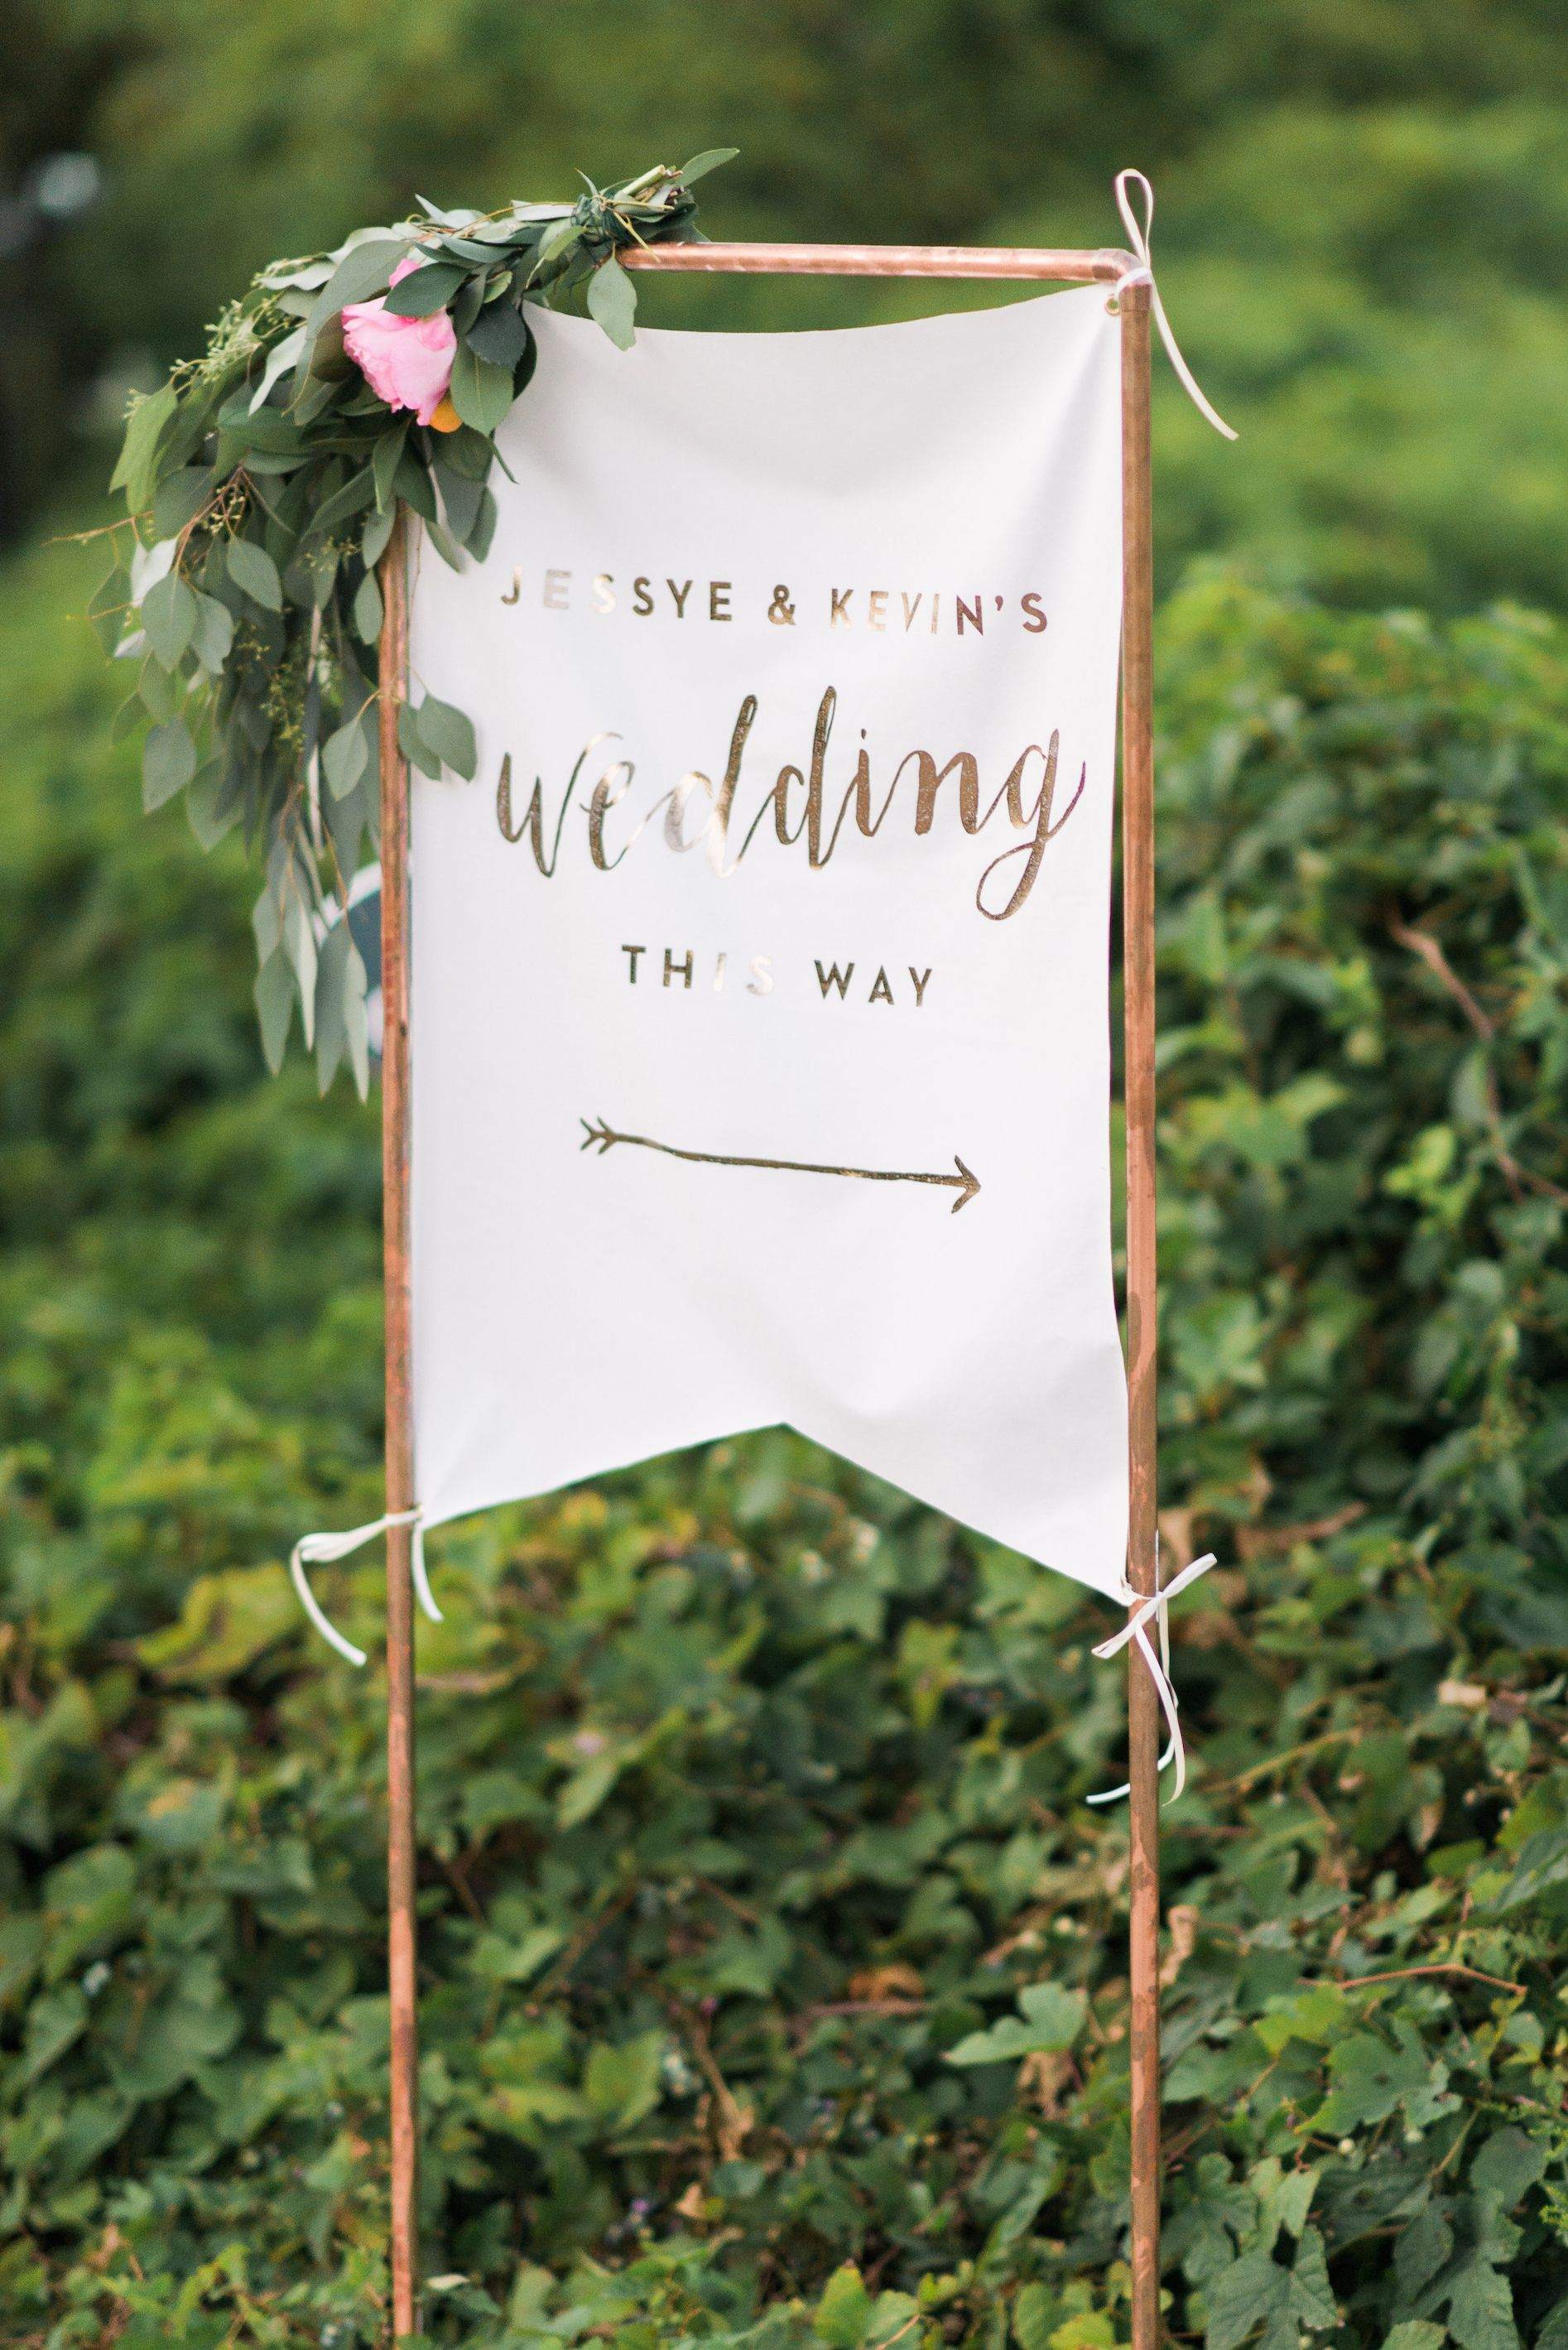 Desktop diy wedding signs and banners for using a cricut machine smartphone high resolution ger bride jessye of city tonicus colorful